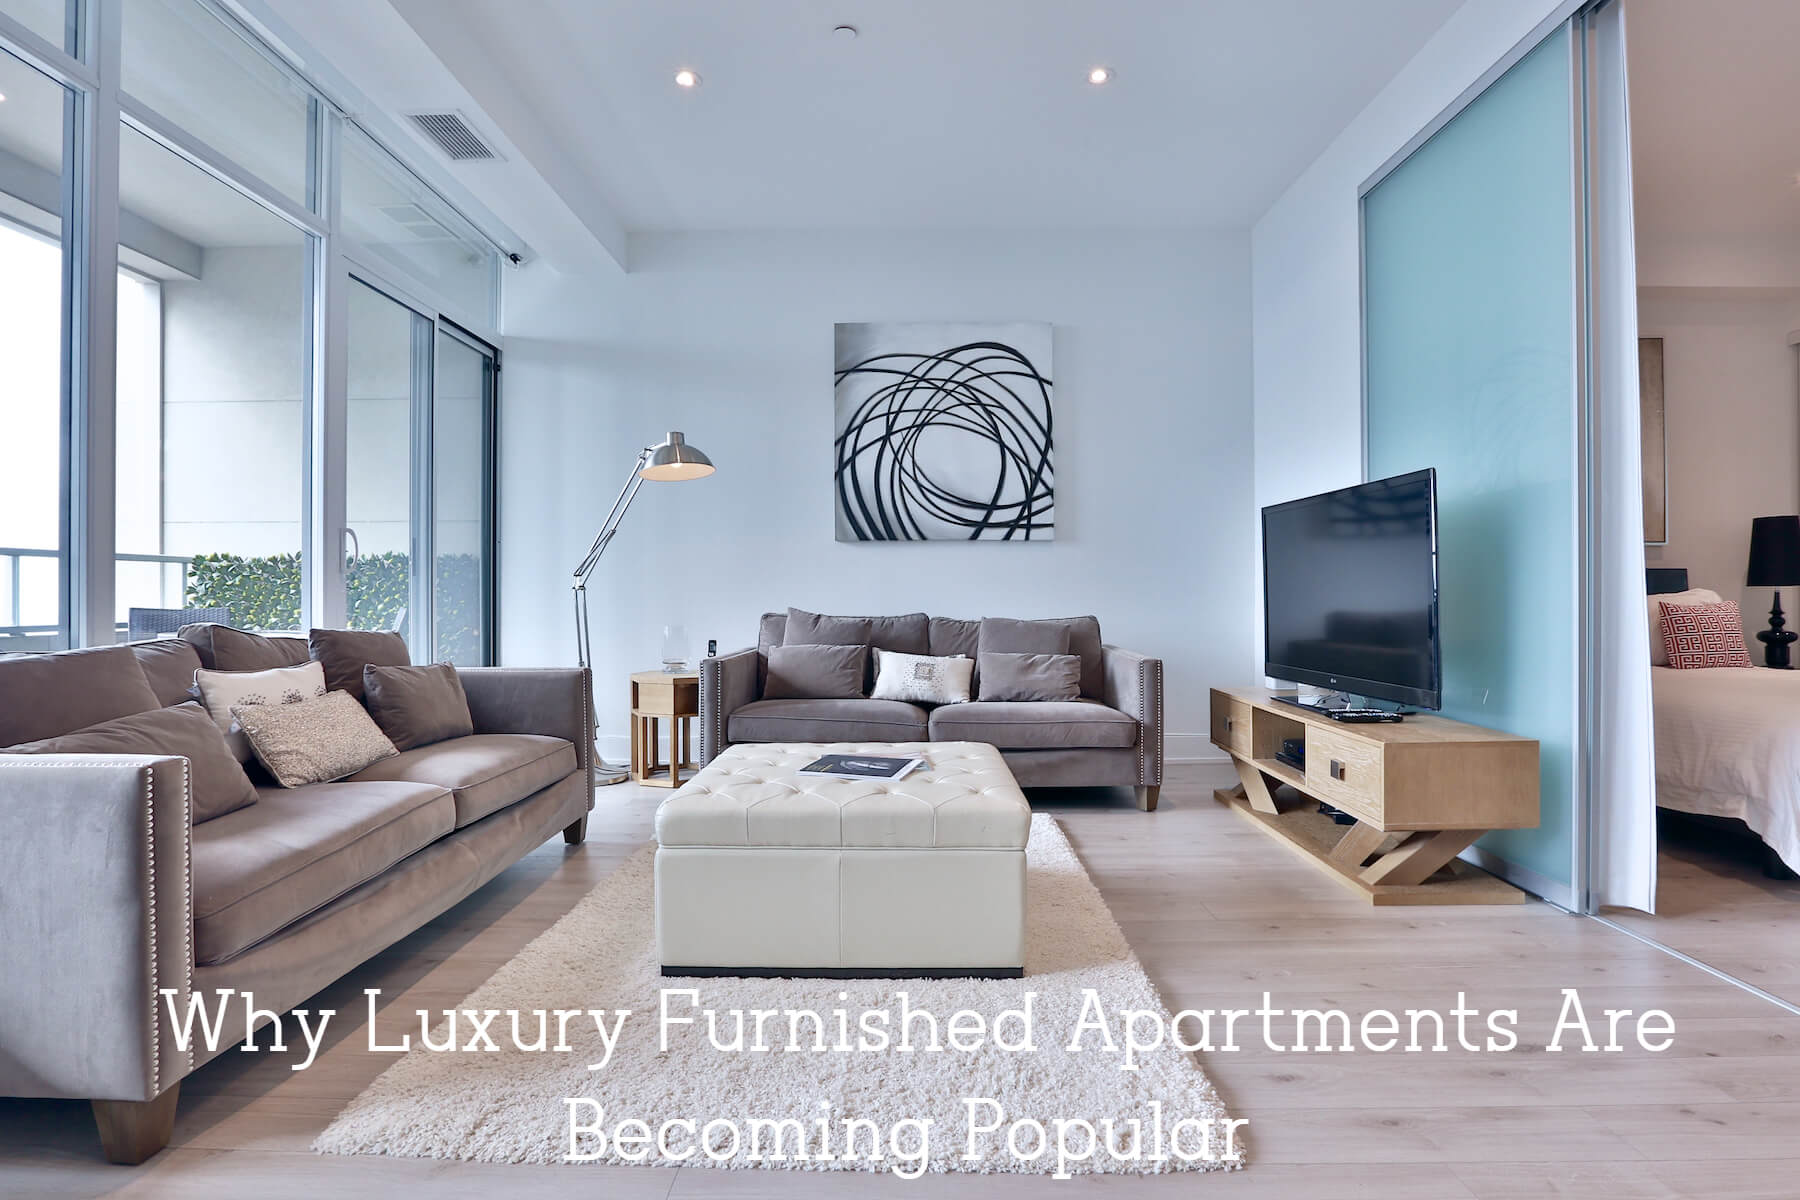 Why Luxury Furnished Apartments Are Becoming Popular Among Travelers